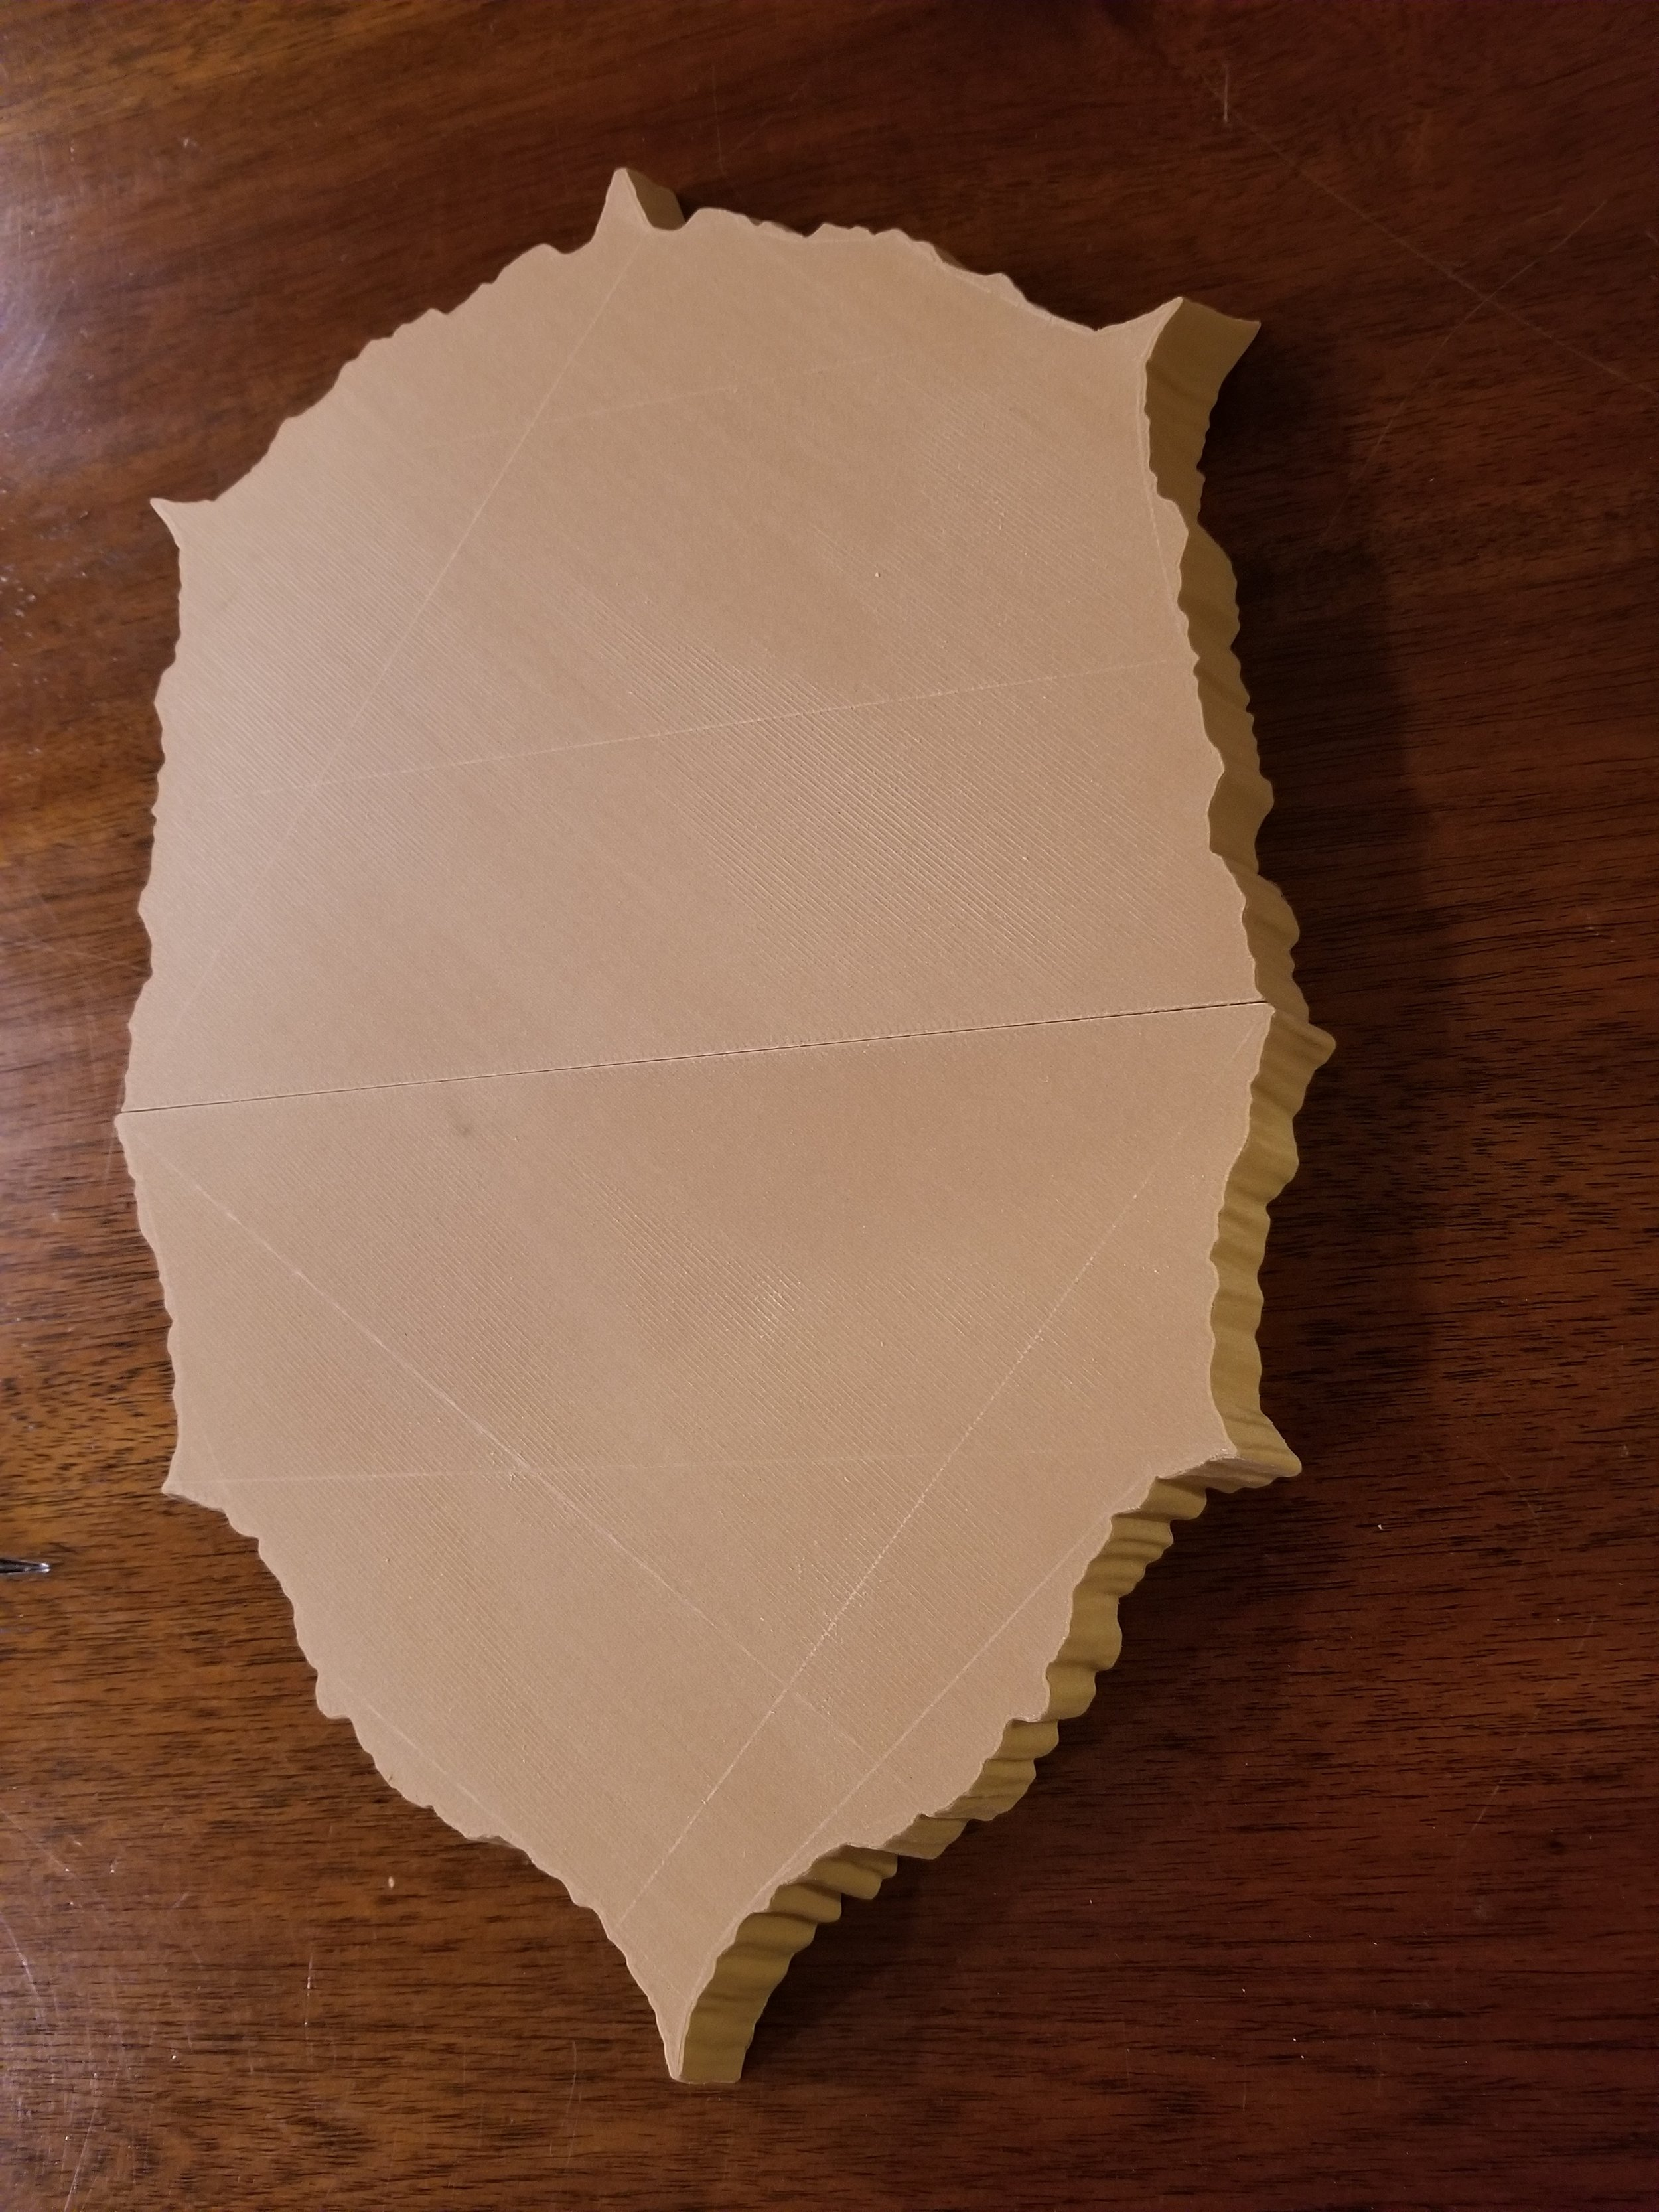 The trophy mount freshly printed (needs sanding and staining)